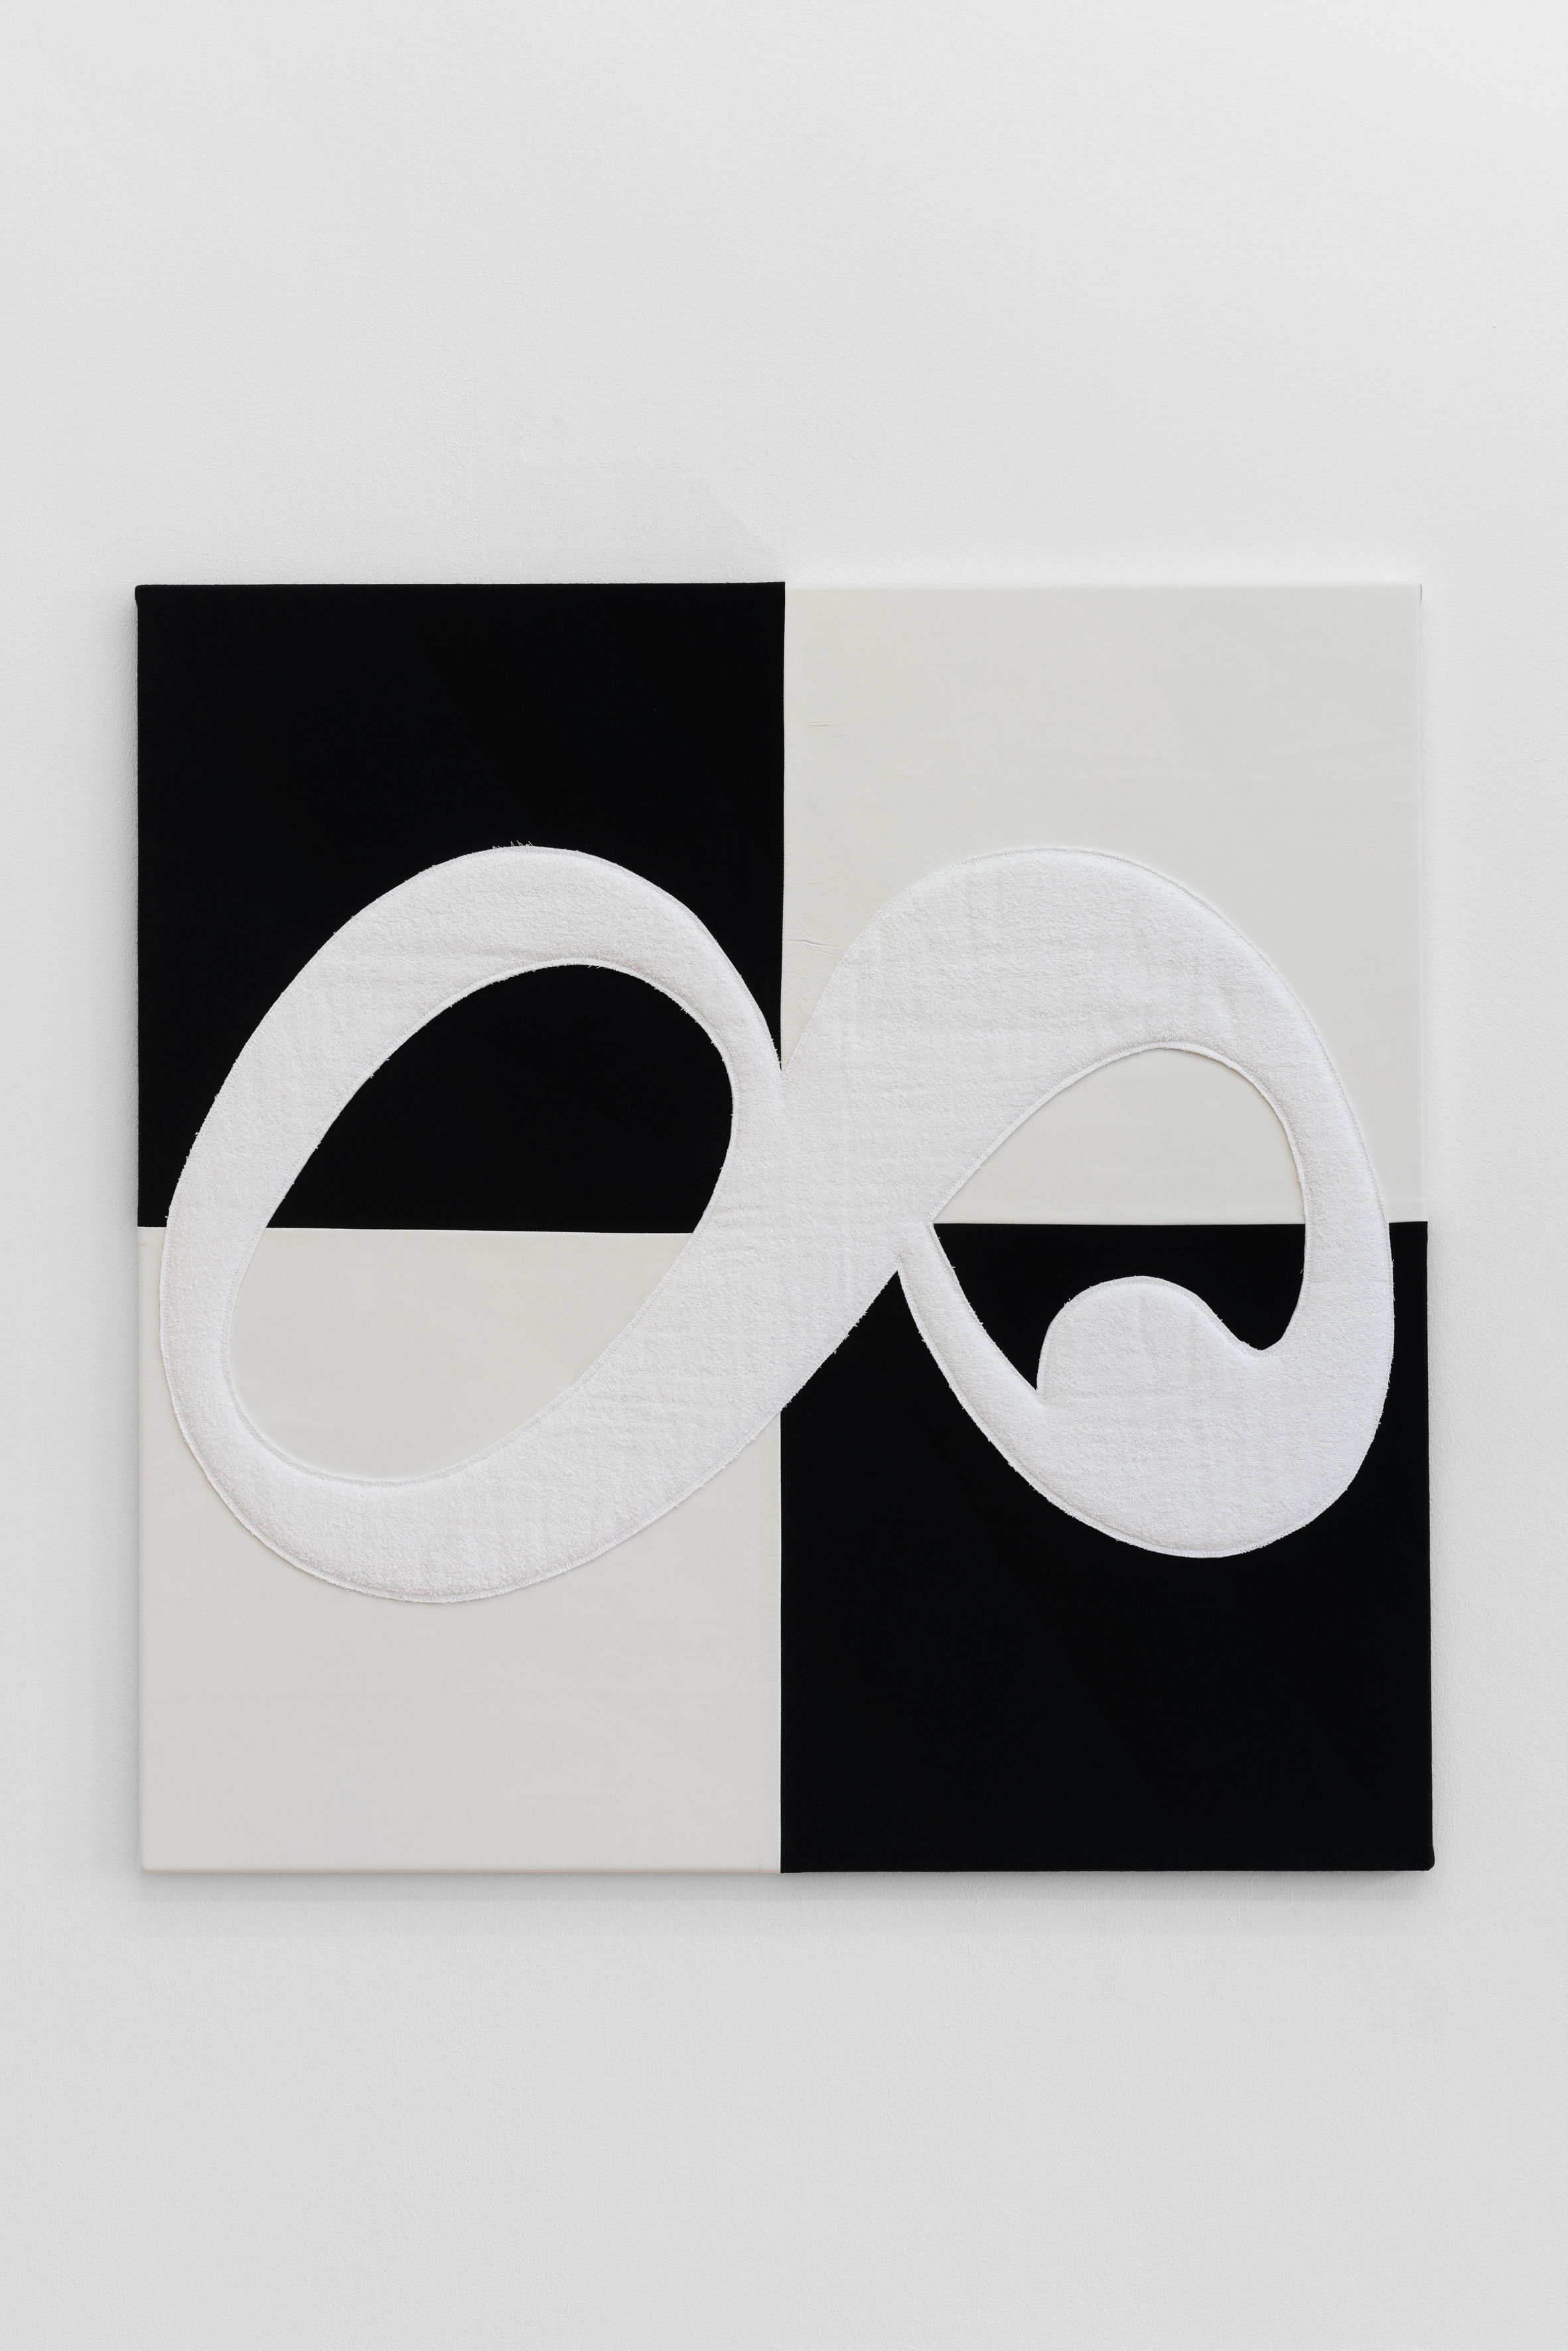 Benjamin Hirte,  Not yet titled , 2019 Felt, leather, and terry cloth on stretchers 100 x 100 cm